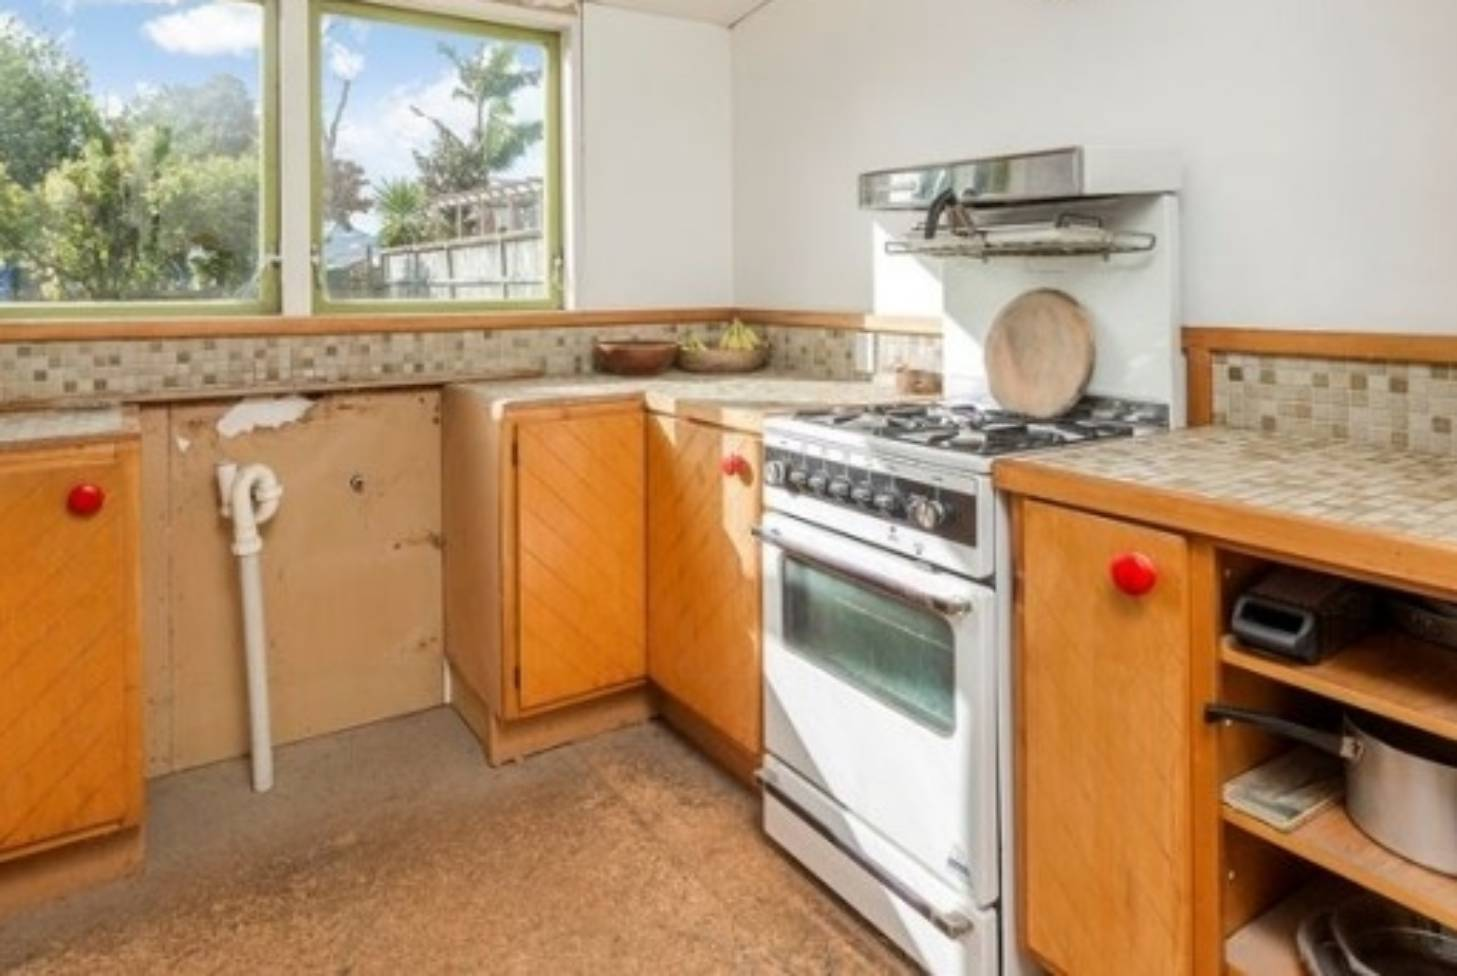 Everything-but-the-kitchen-sink house sells for $1 2 million